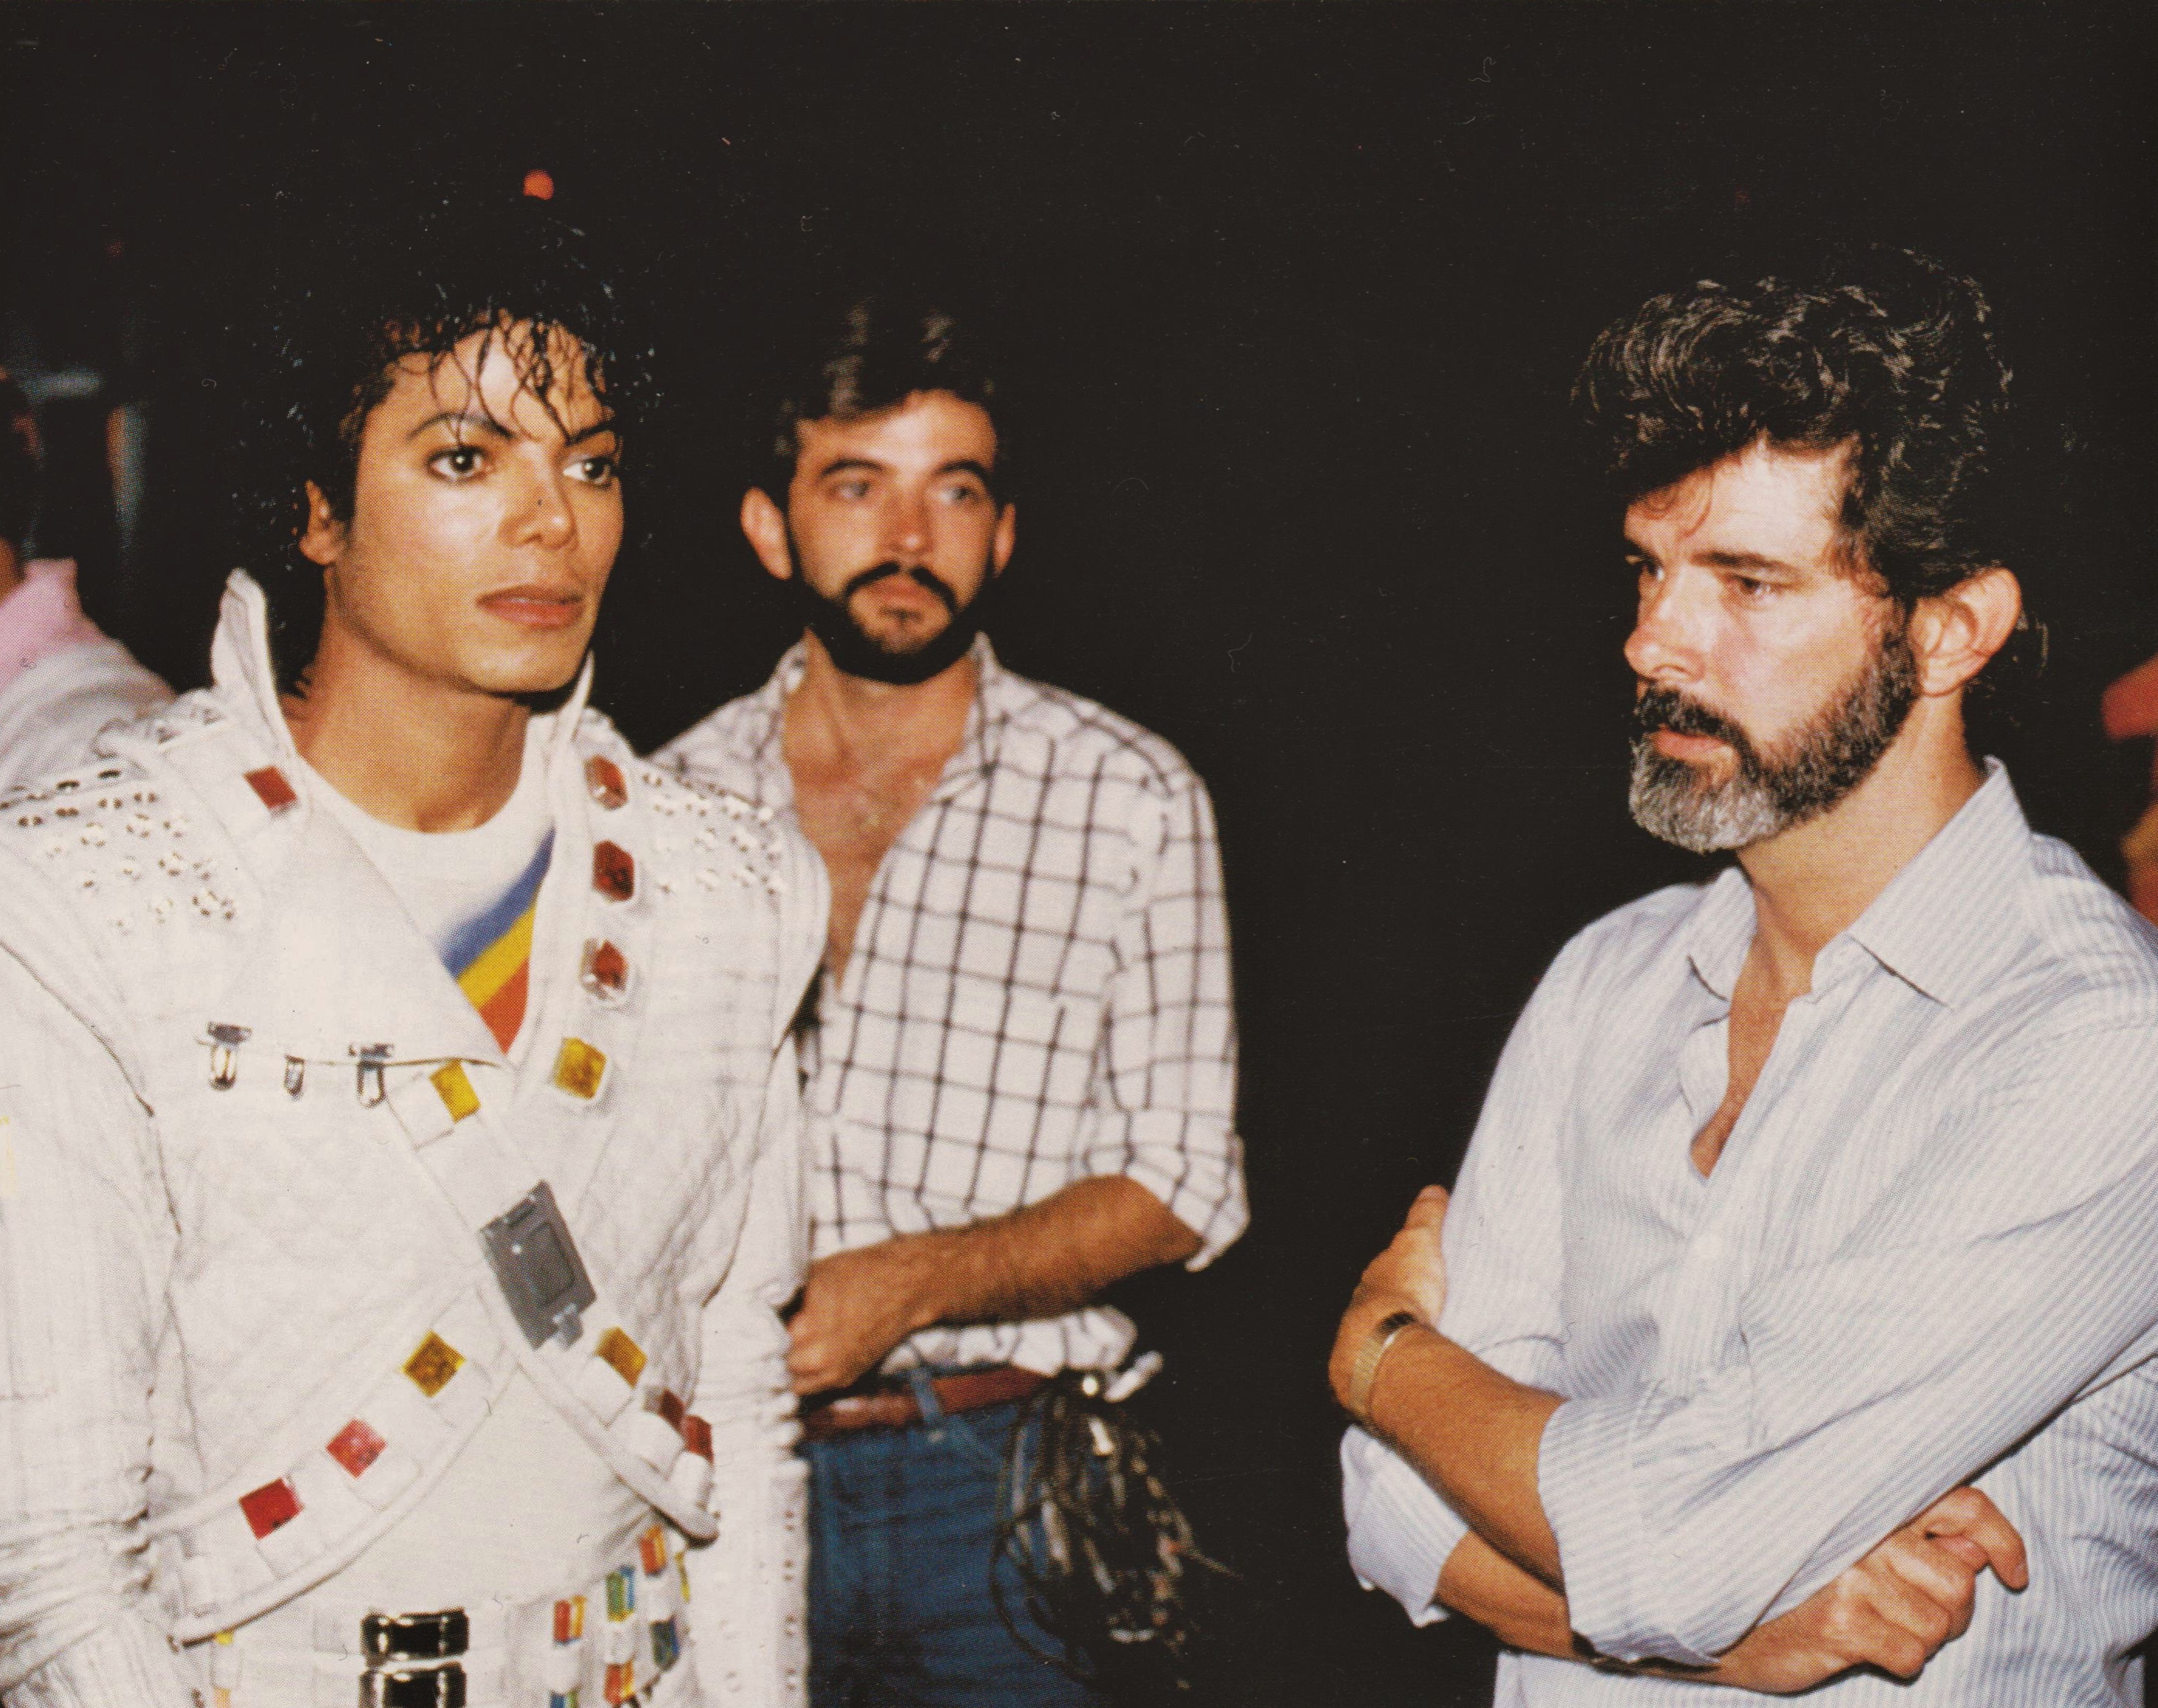 Michael Jackson - HQ Scan - Captain Eo